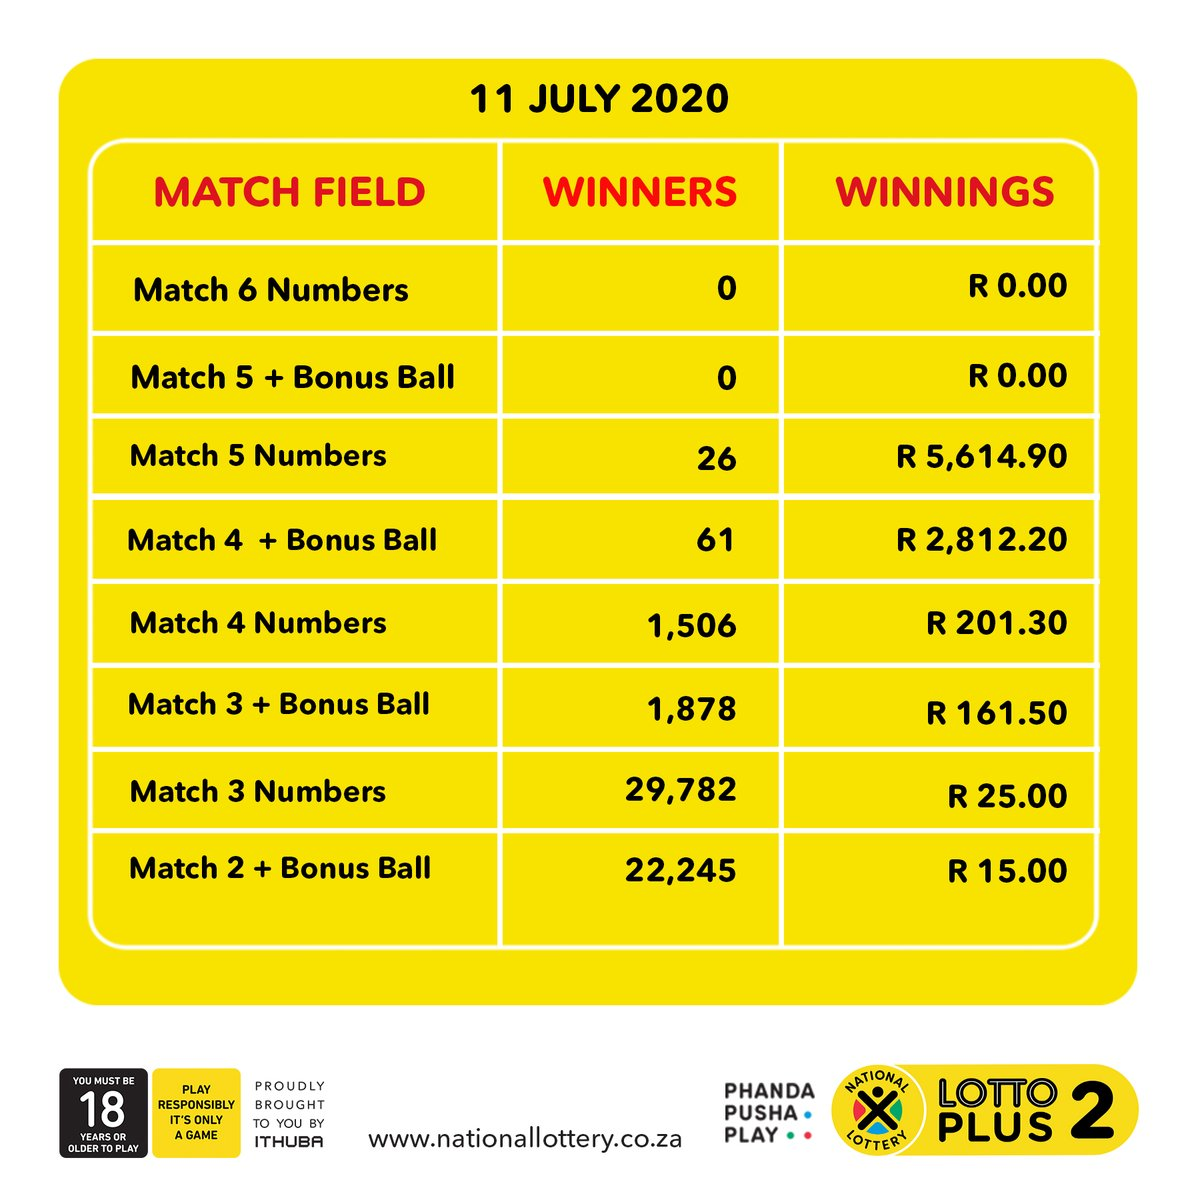 Here are #dividends for the #LOTTOPLUS 2 draw on (11/07/20)! You have another chance to win the rollover jackpot!